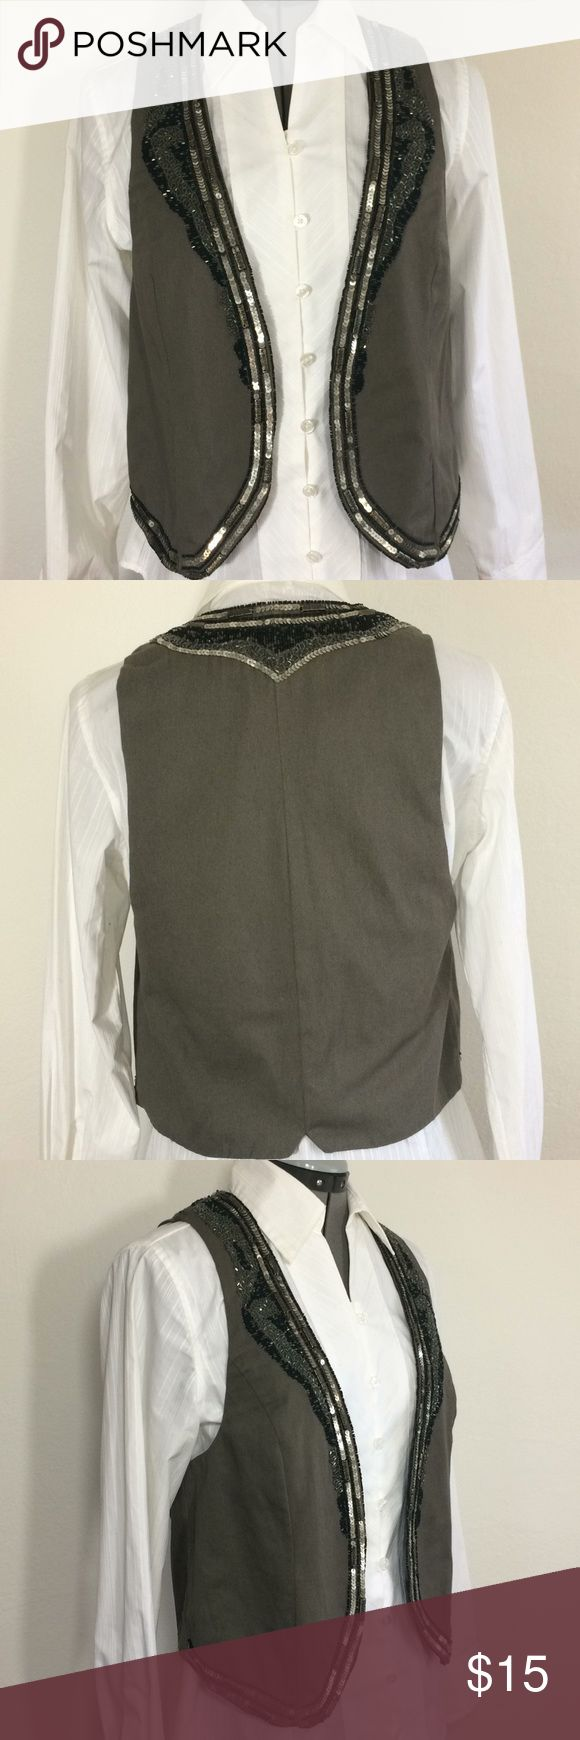 """NWT MNG olive canvas lined vest with sequin/bead-M Beading and sequins along collar and hem add a bump of sparkle to this super trendy NWT vest by MNG. Olive exterior lined with black pin stripe. No closure front. Sz M. Shoulder to hem 21"""" Armpit to armpit 17"""" Versatile piece-slack/skirt/jeans, formal shirt to casual tee. Super cute!💕 MNG Jackets & Coats Vests"""